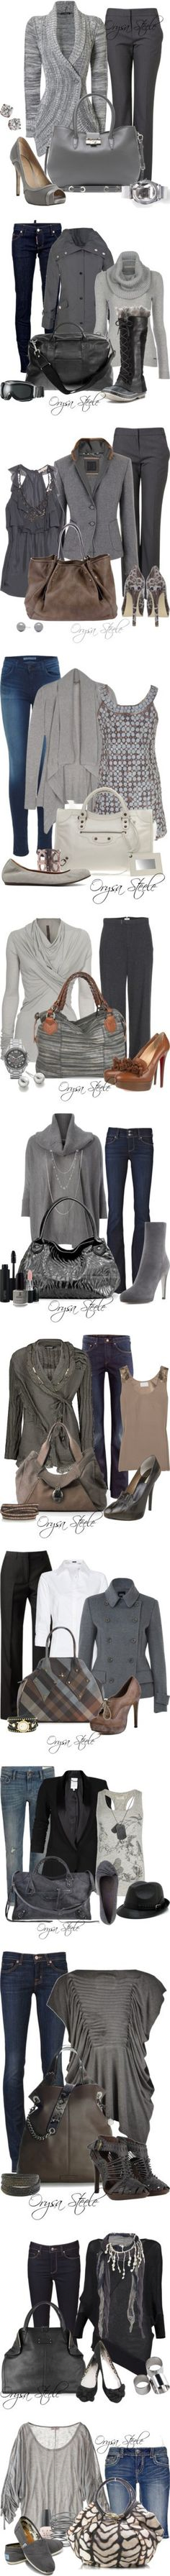 """Shades of Grey"" by orysa - luv luv luv !"